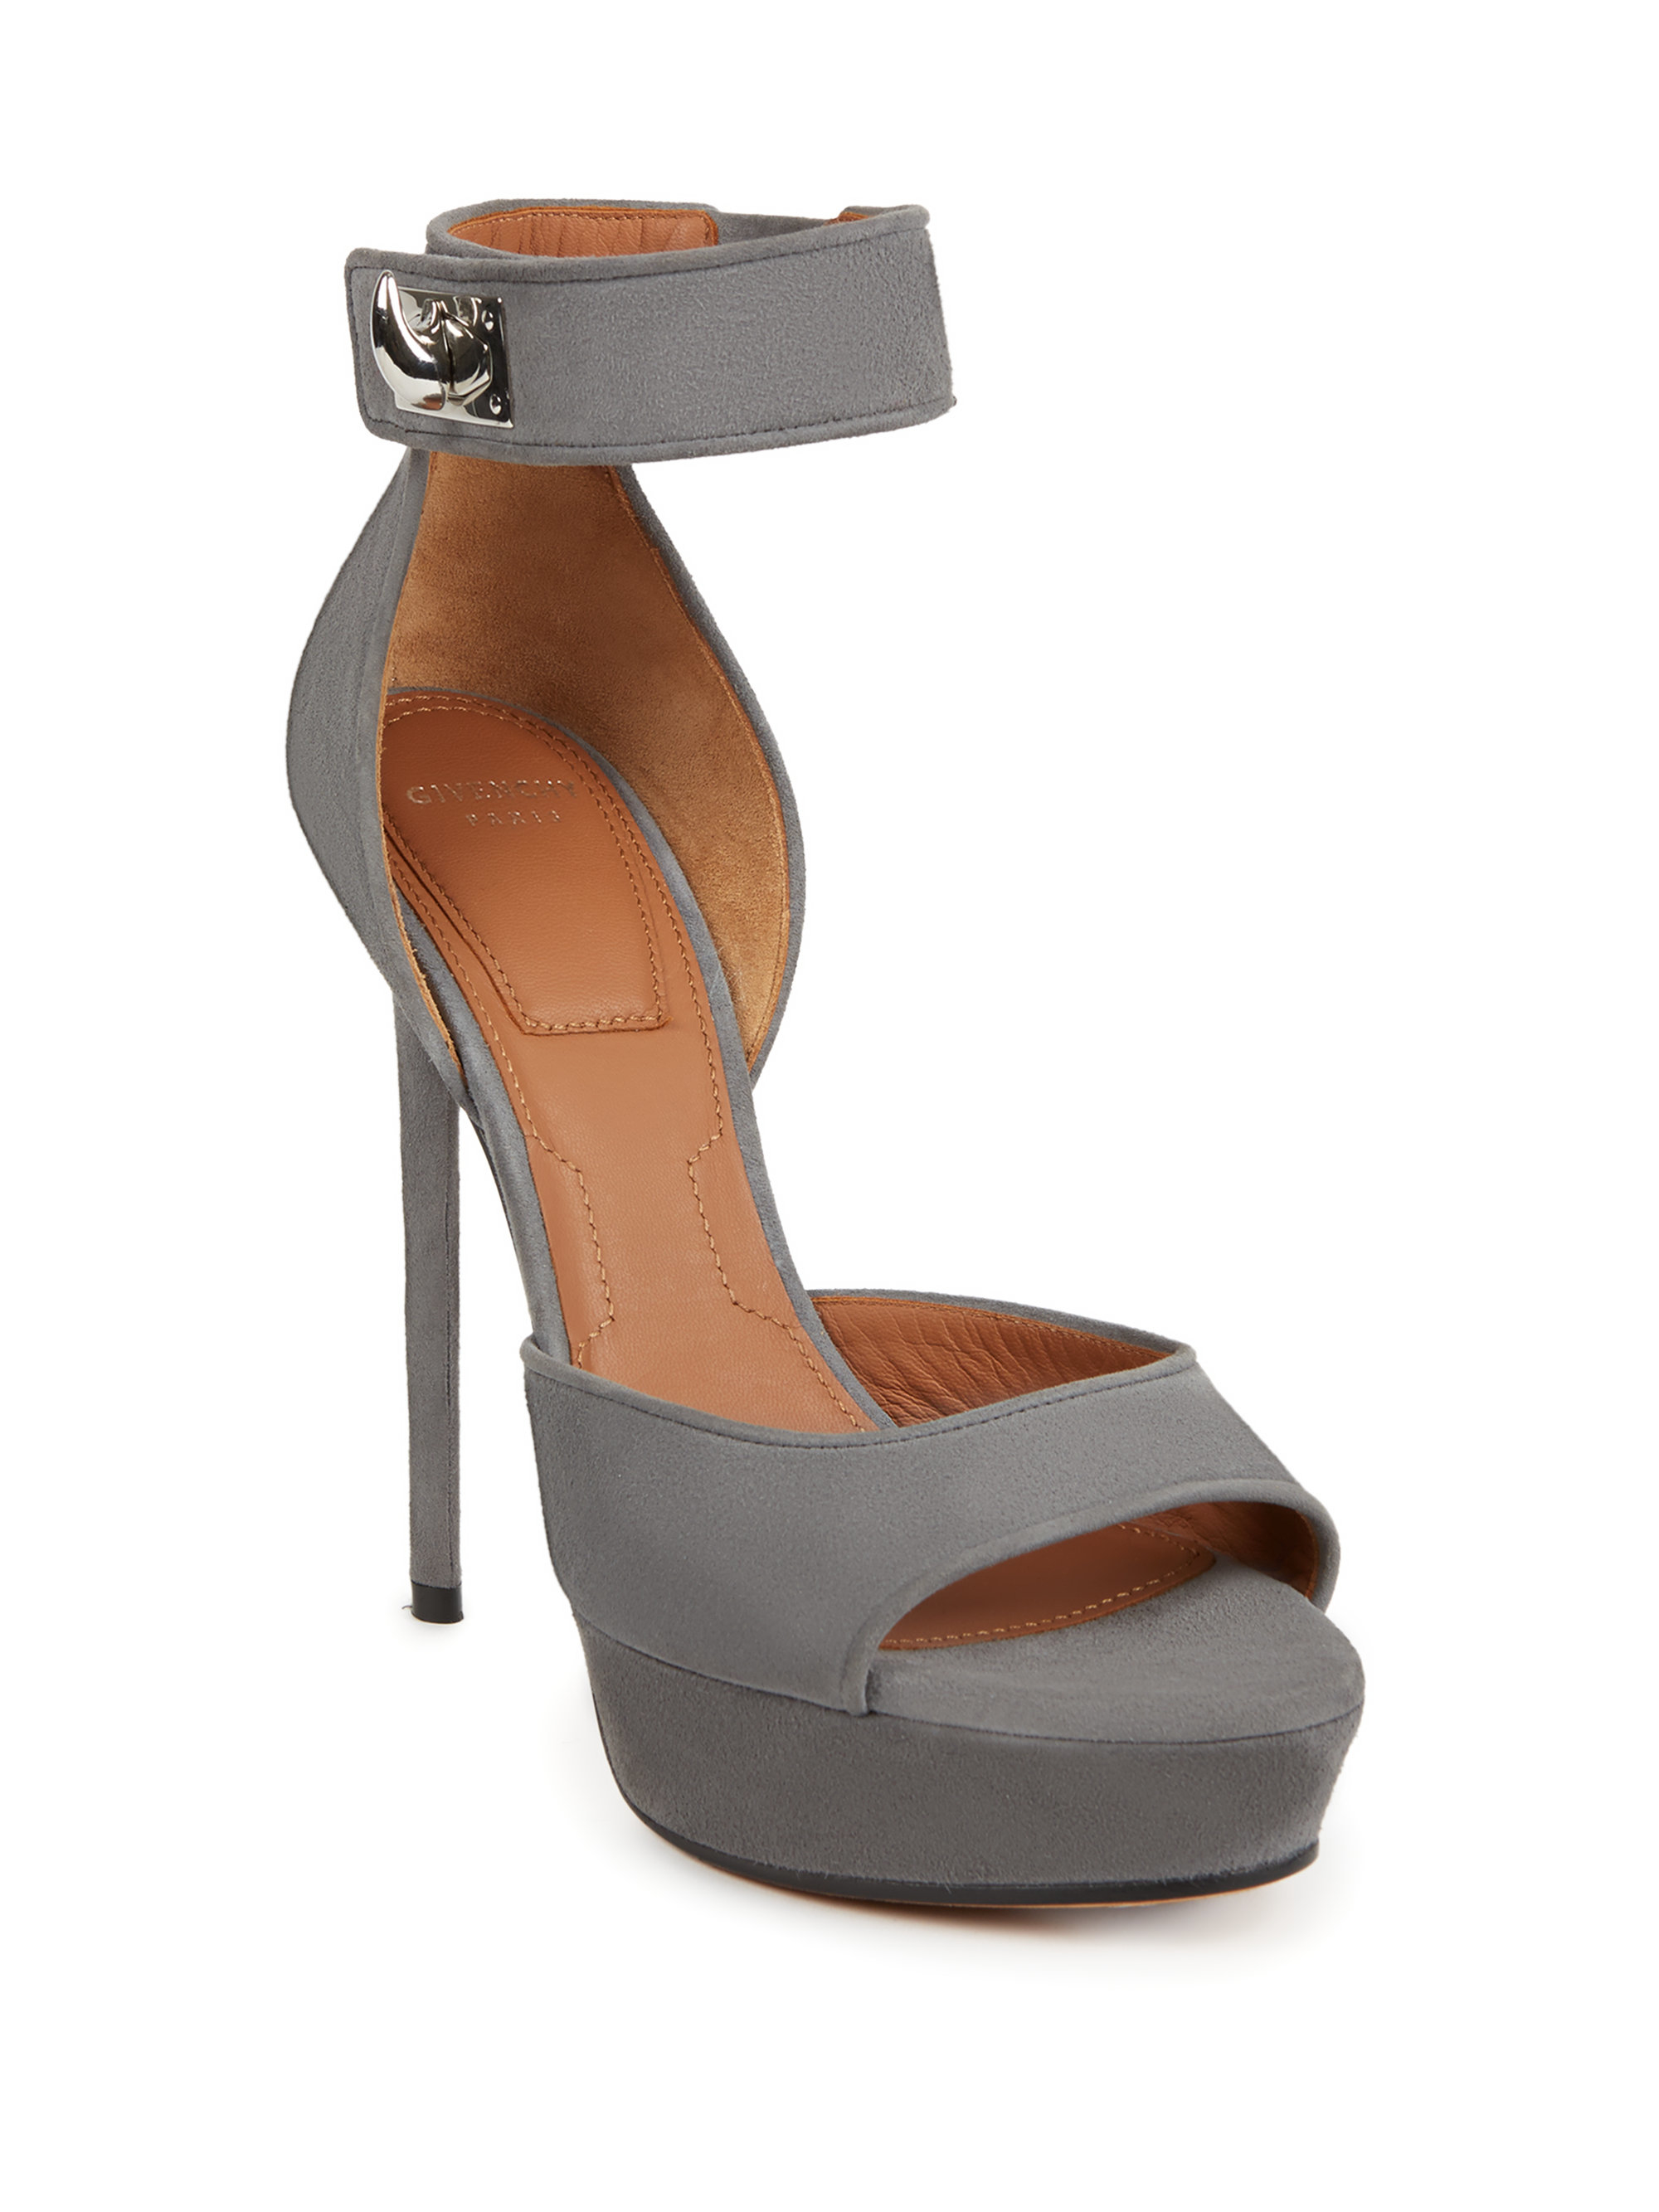 13f111d27aebe Givenchy Gray Suede Shark-lock Platform Sandals